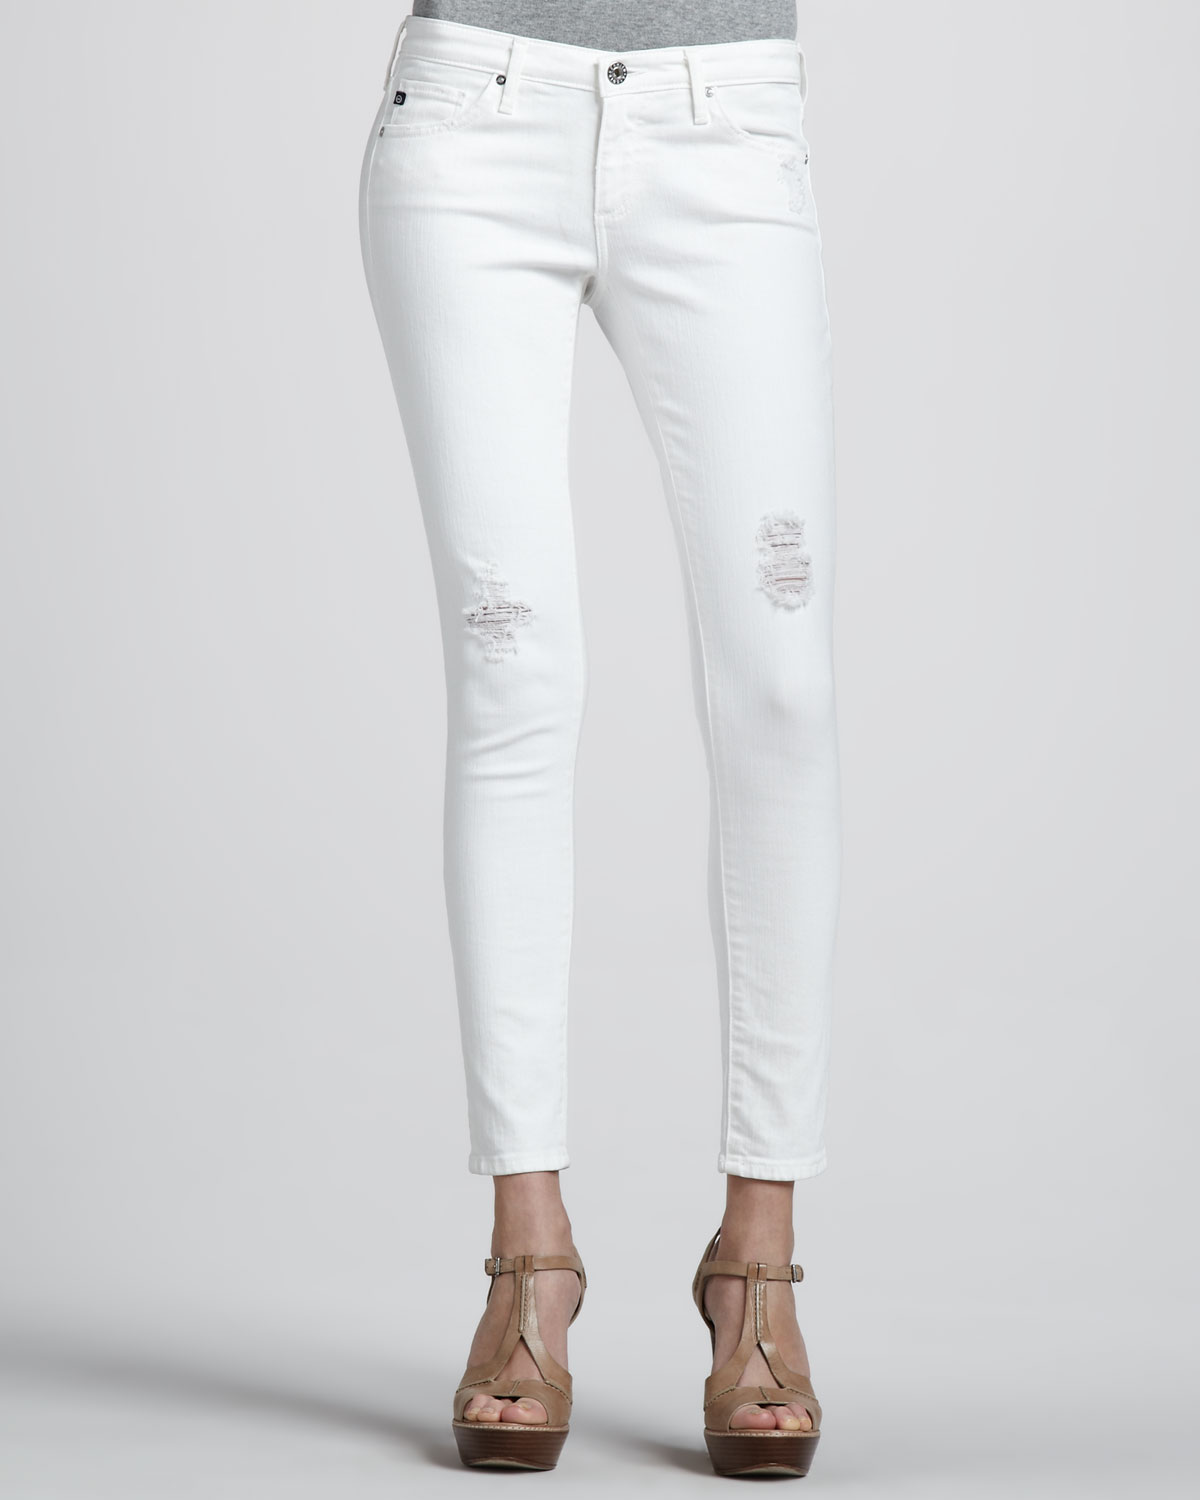 Ag White Jeans - Is Jeans